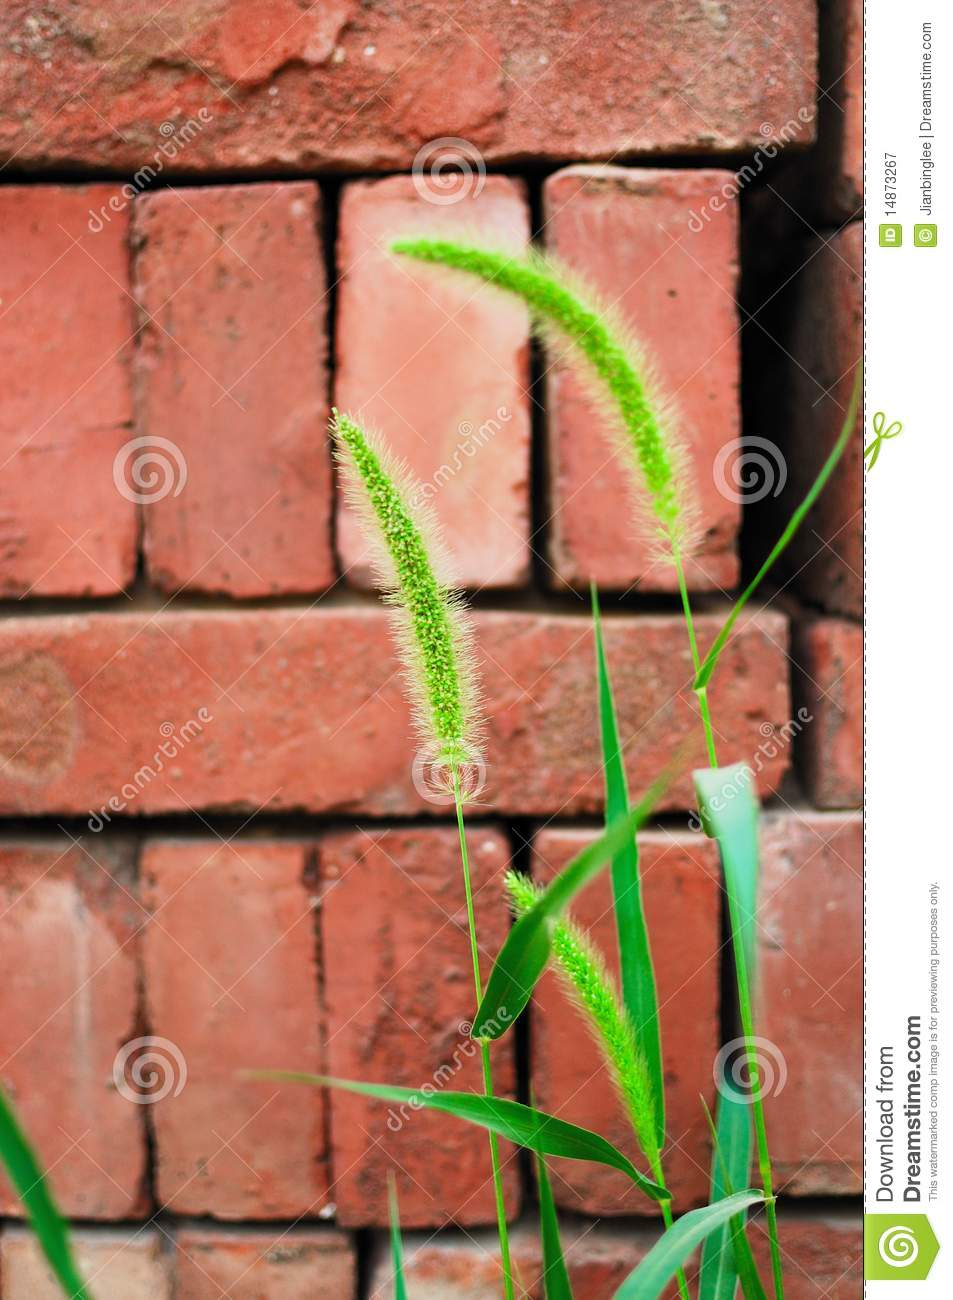 Green bristlegrass and brick